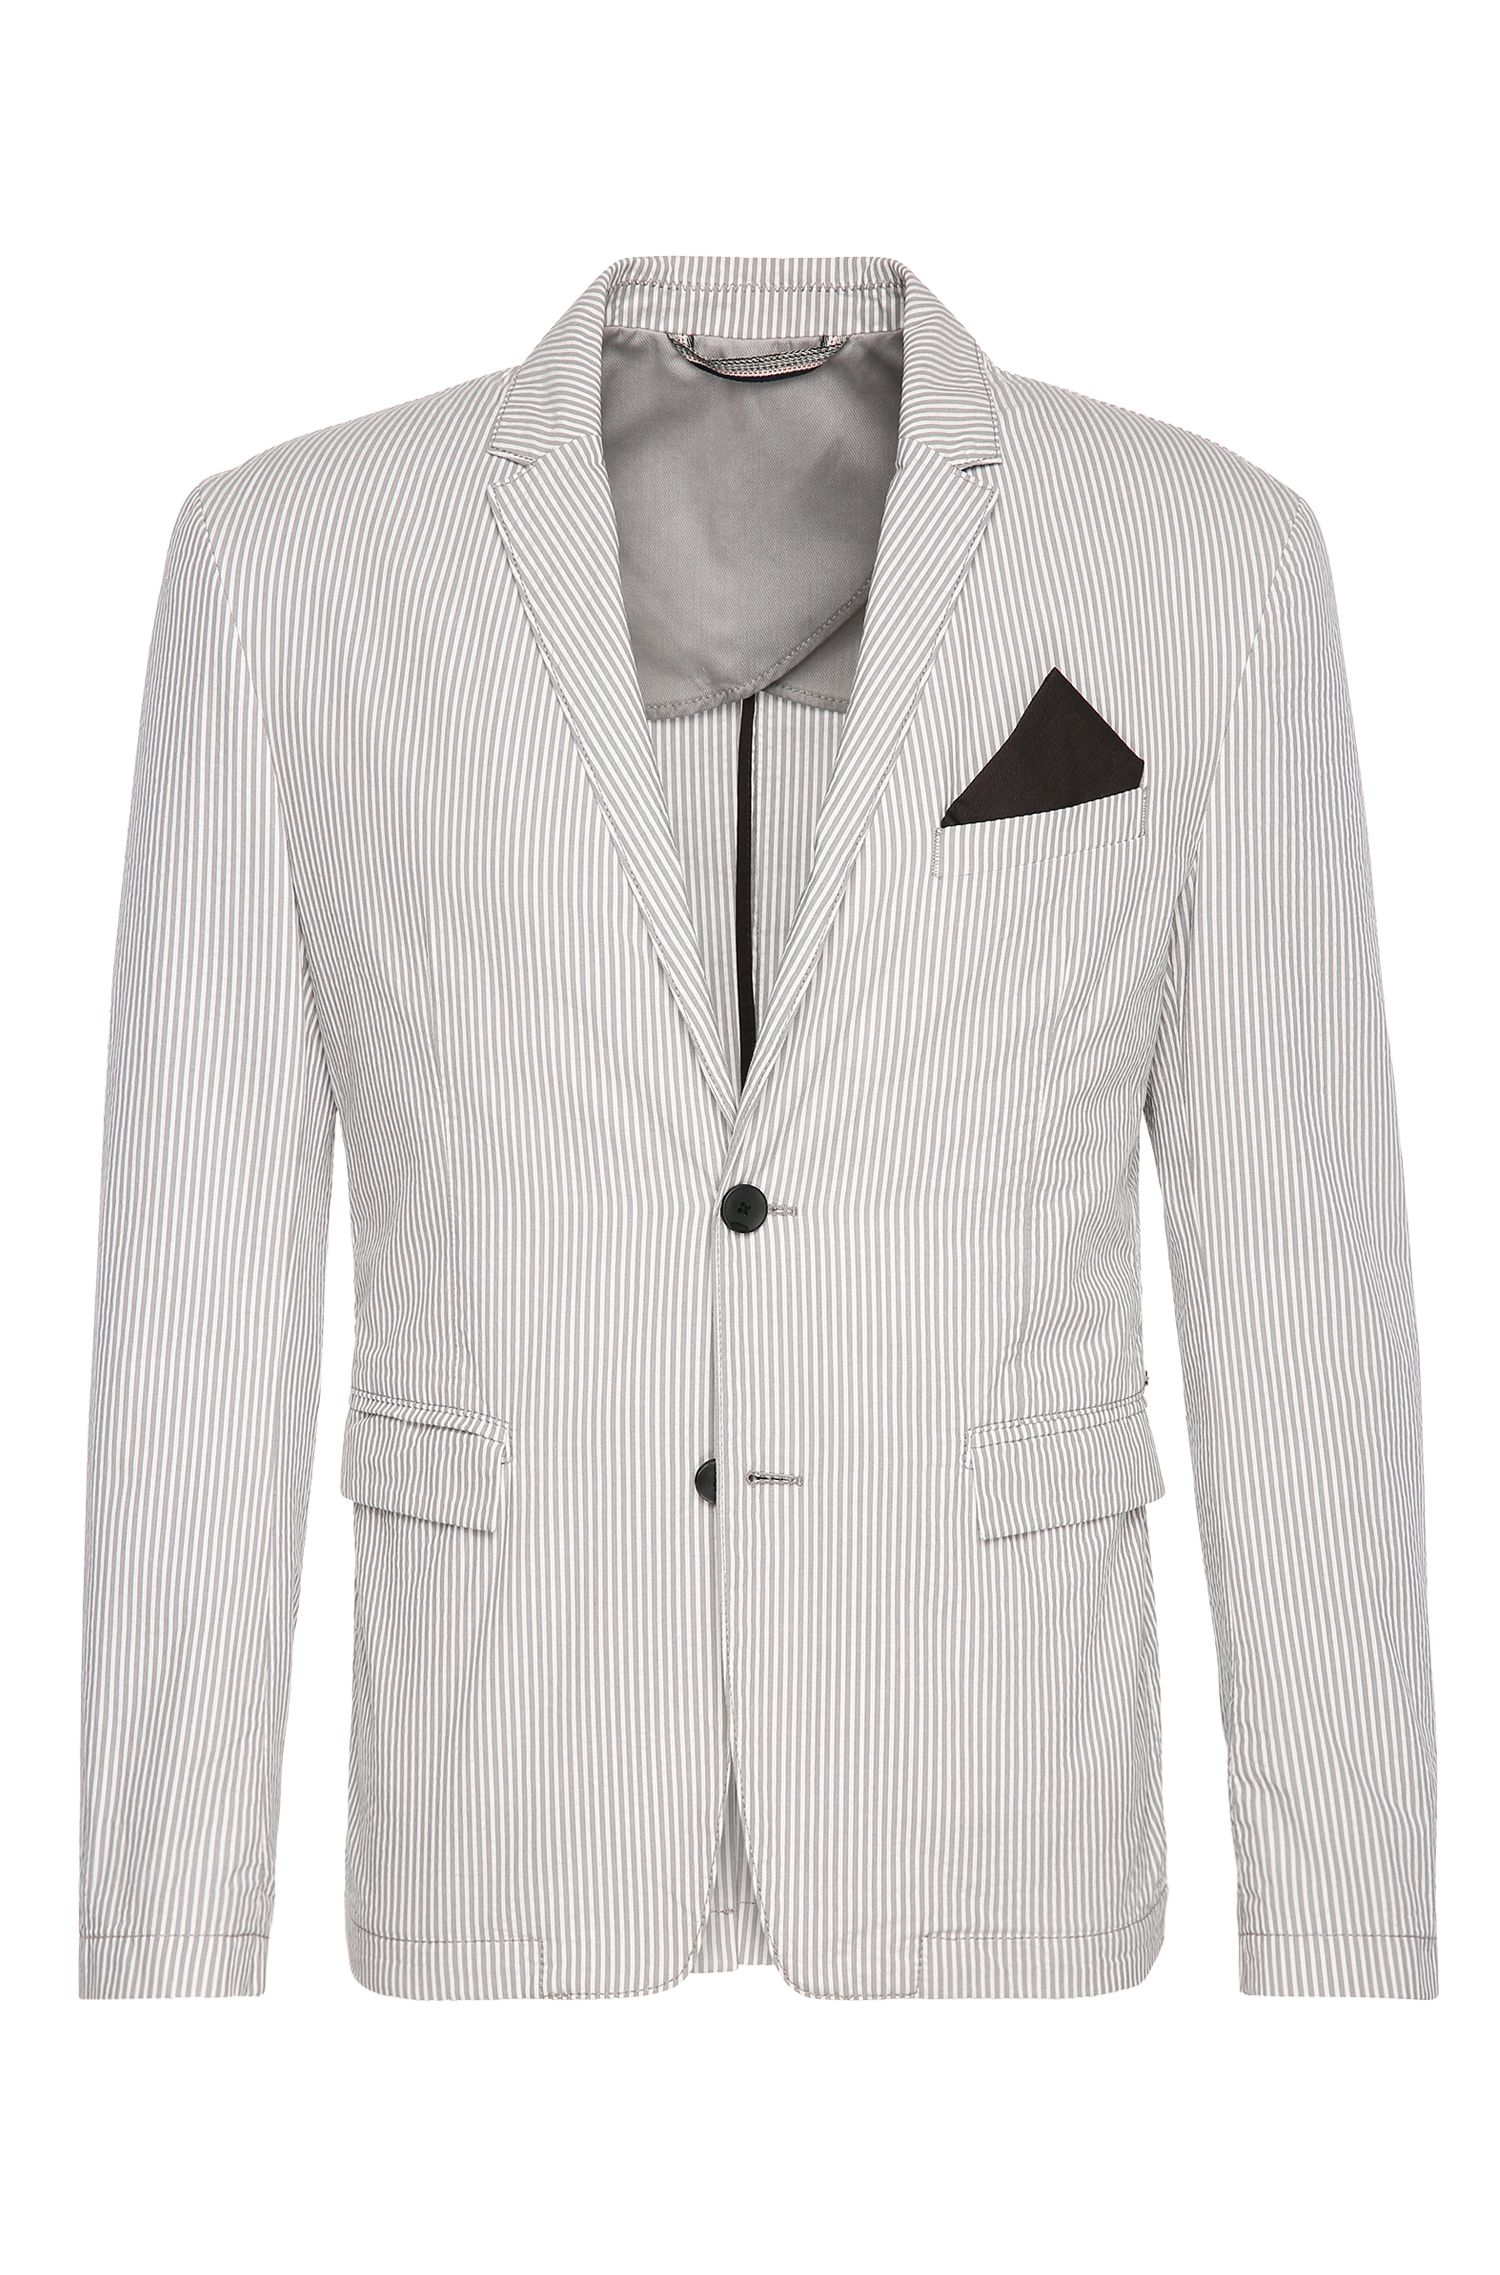 Cotton Seersucker Sport Coat, Slim Fit | Bans BS W, Open White